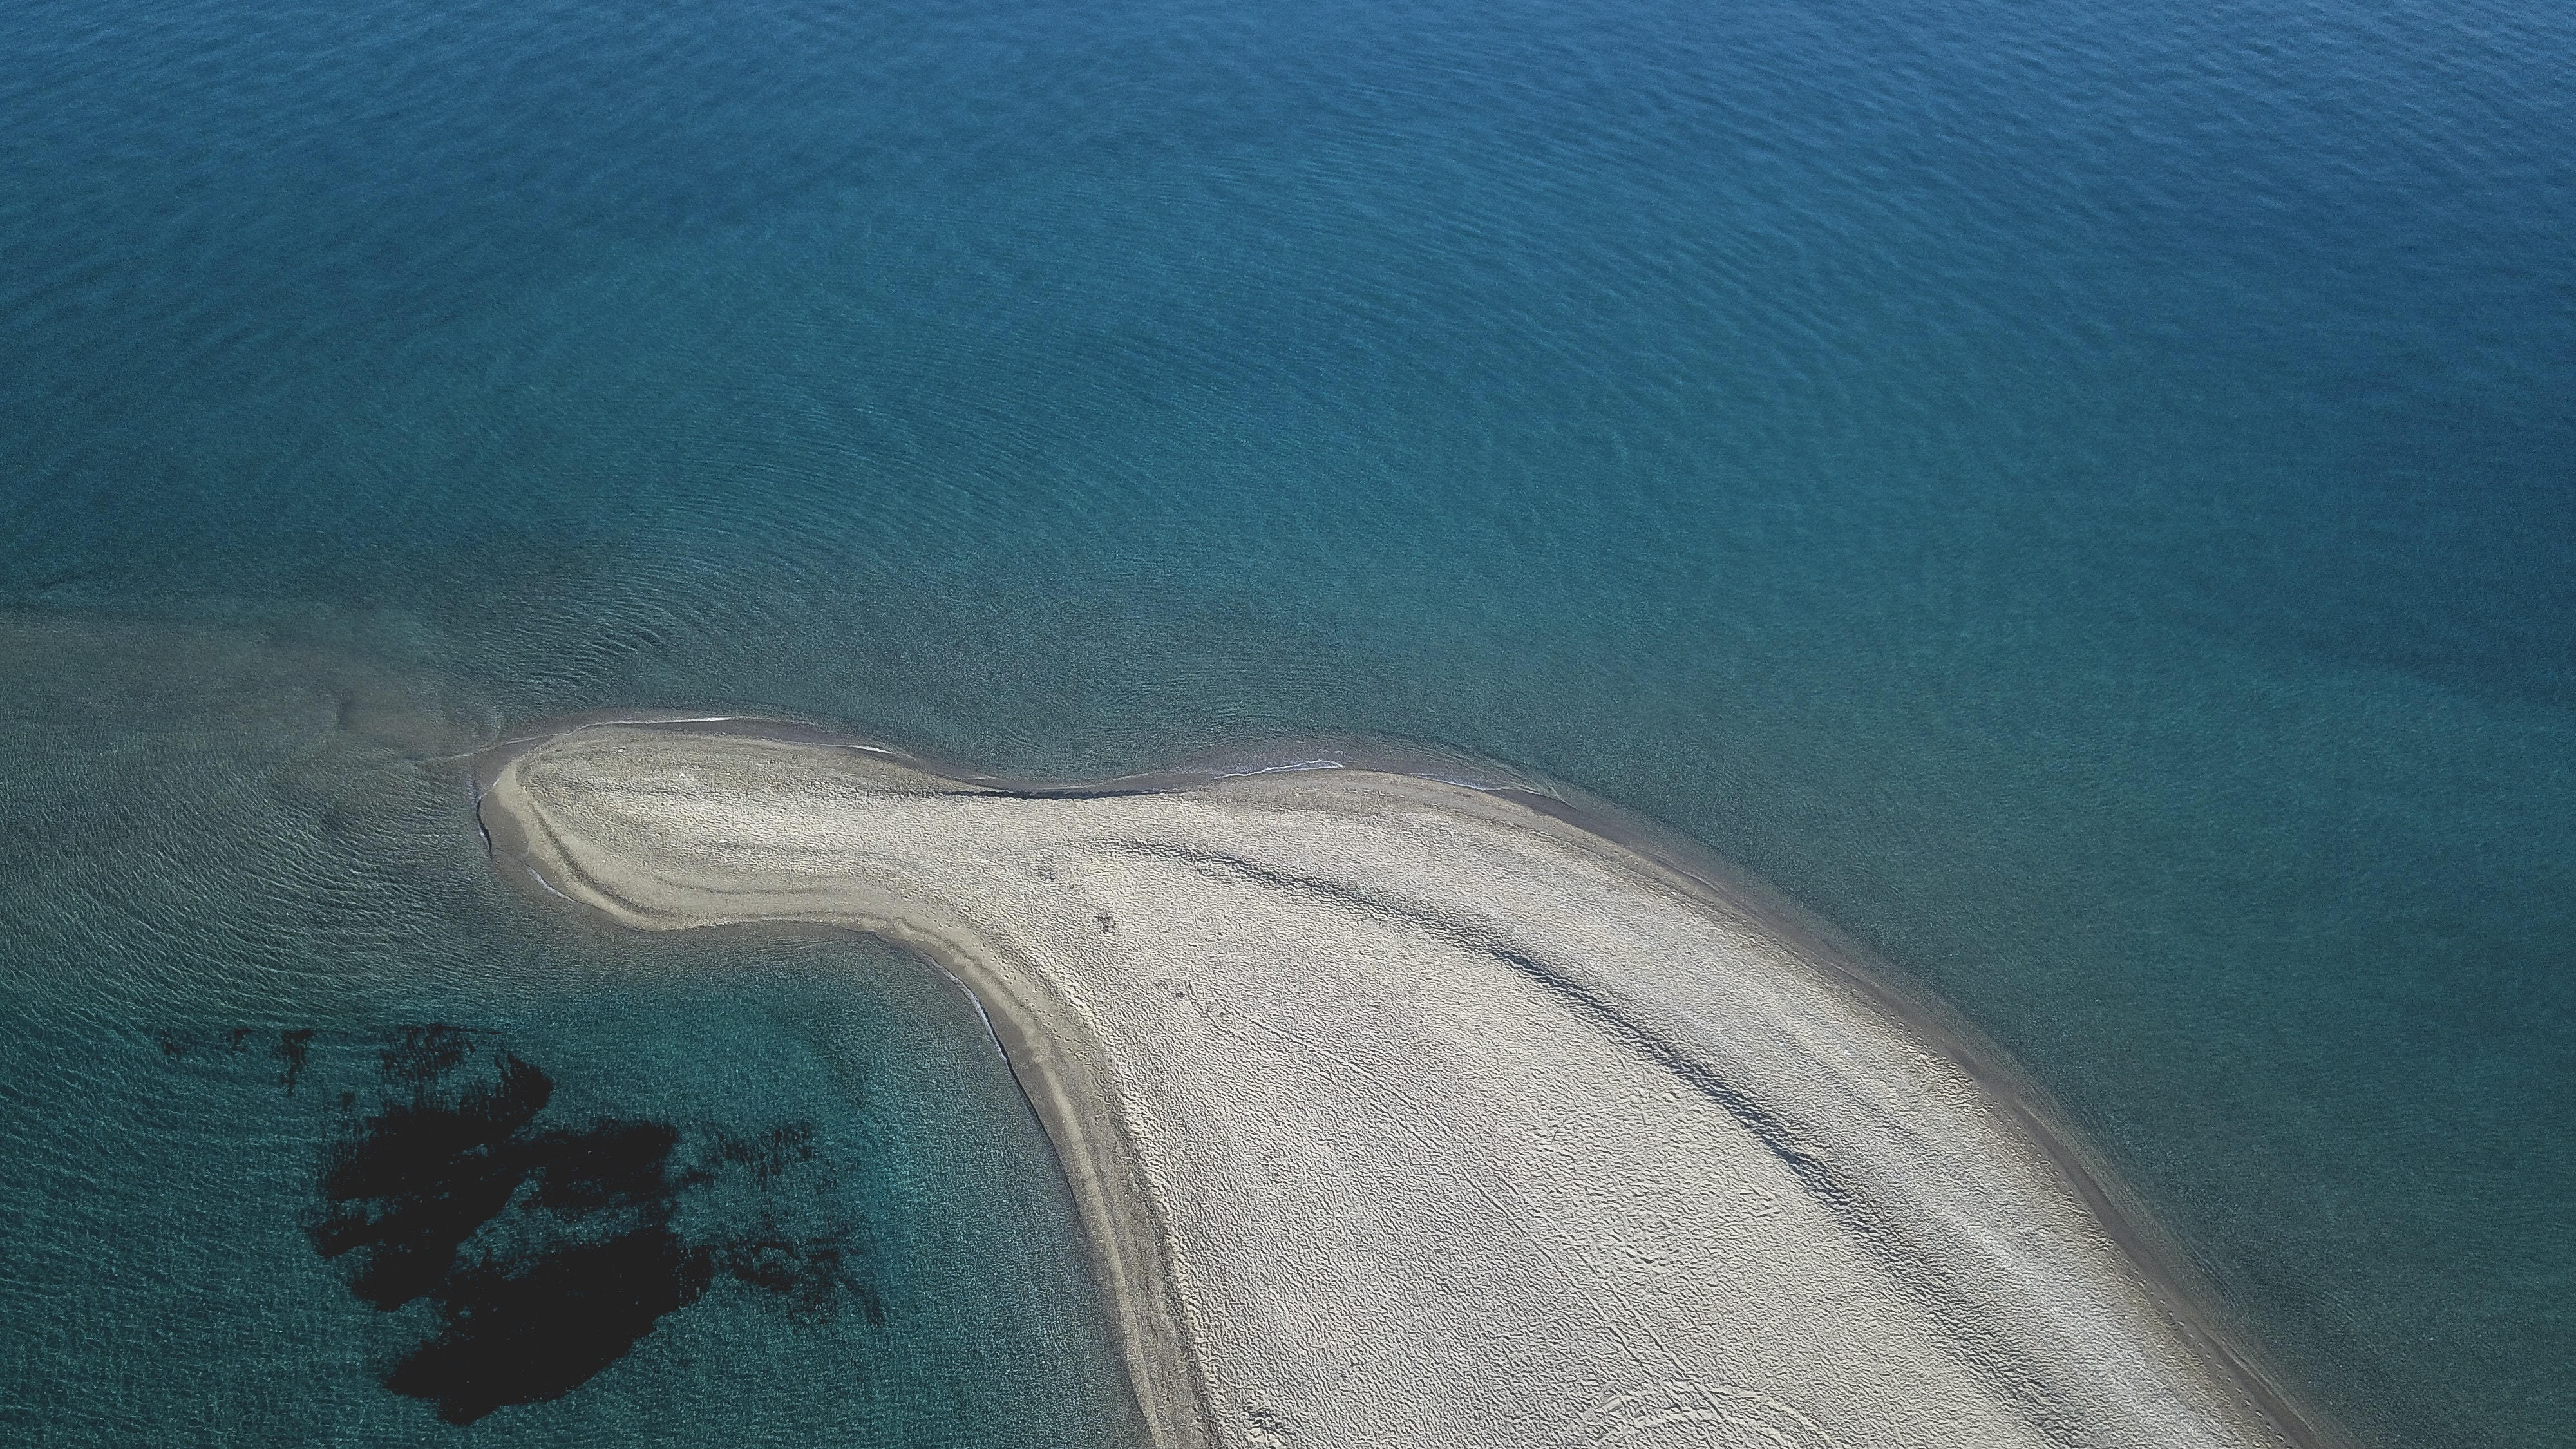 Drone shot of sand in clear blue ocean, Μύτη Ποσειδίου